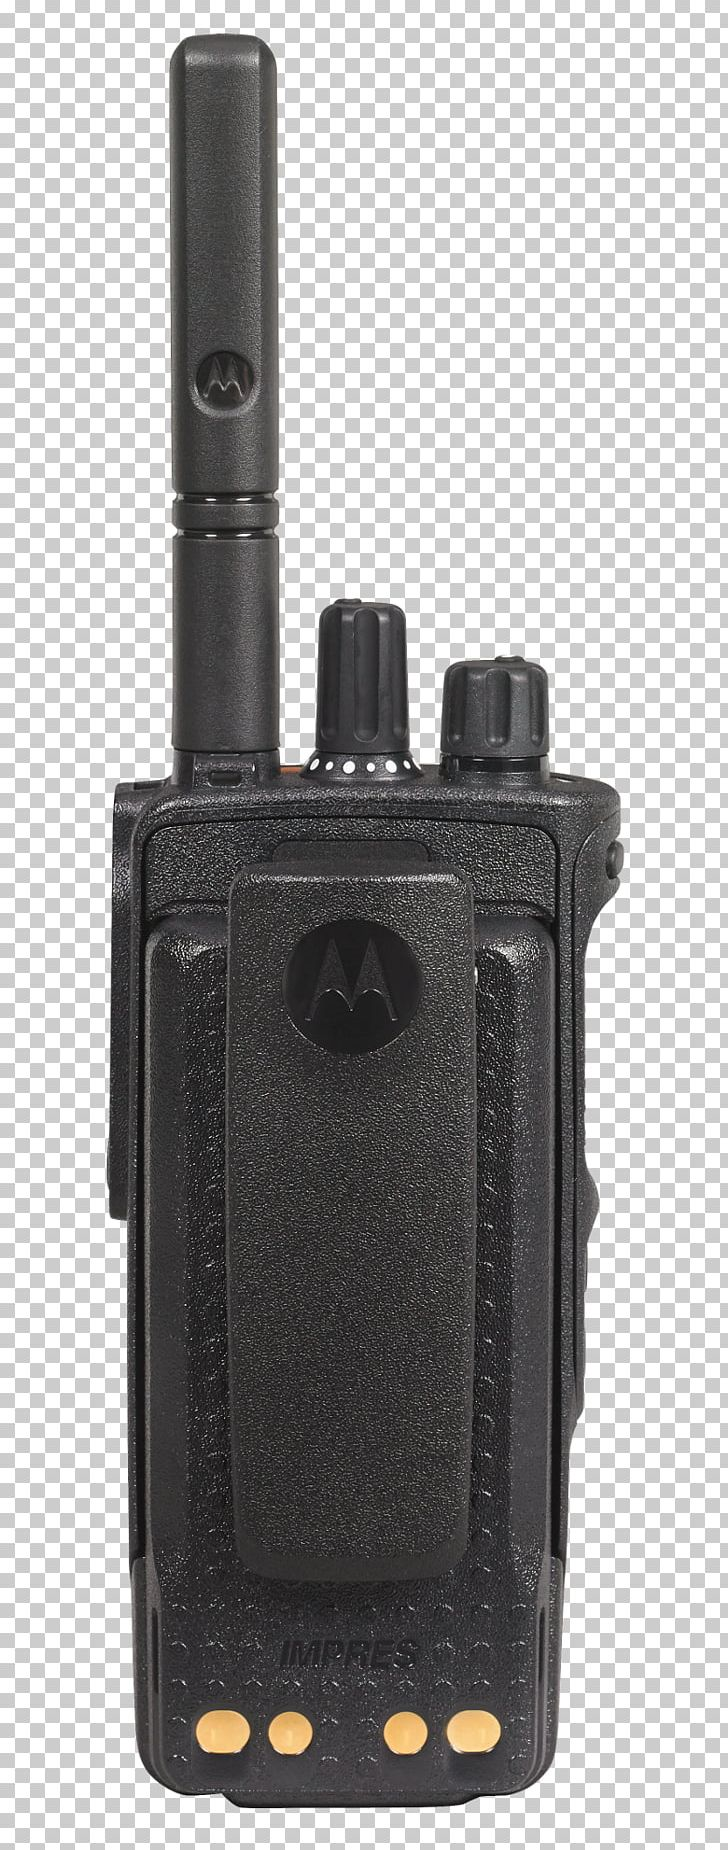 Two-way Radio Motorola Solutions Case PNG, Clipart, Belt, Case, Citizens Band Radio, Communication Device, Electronic Device Free PNG Download